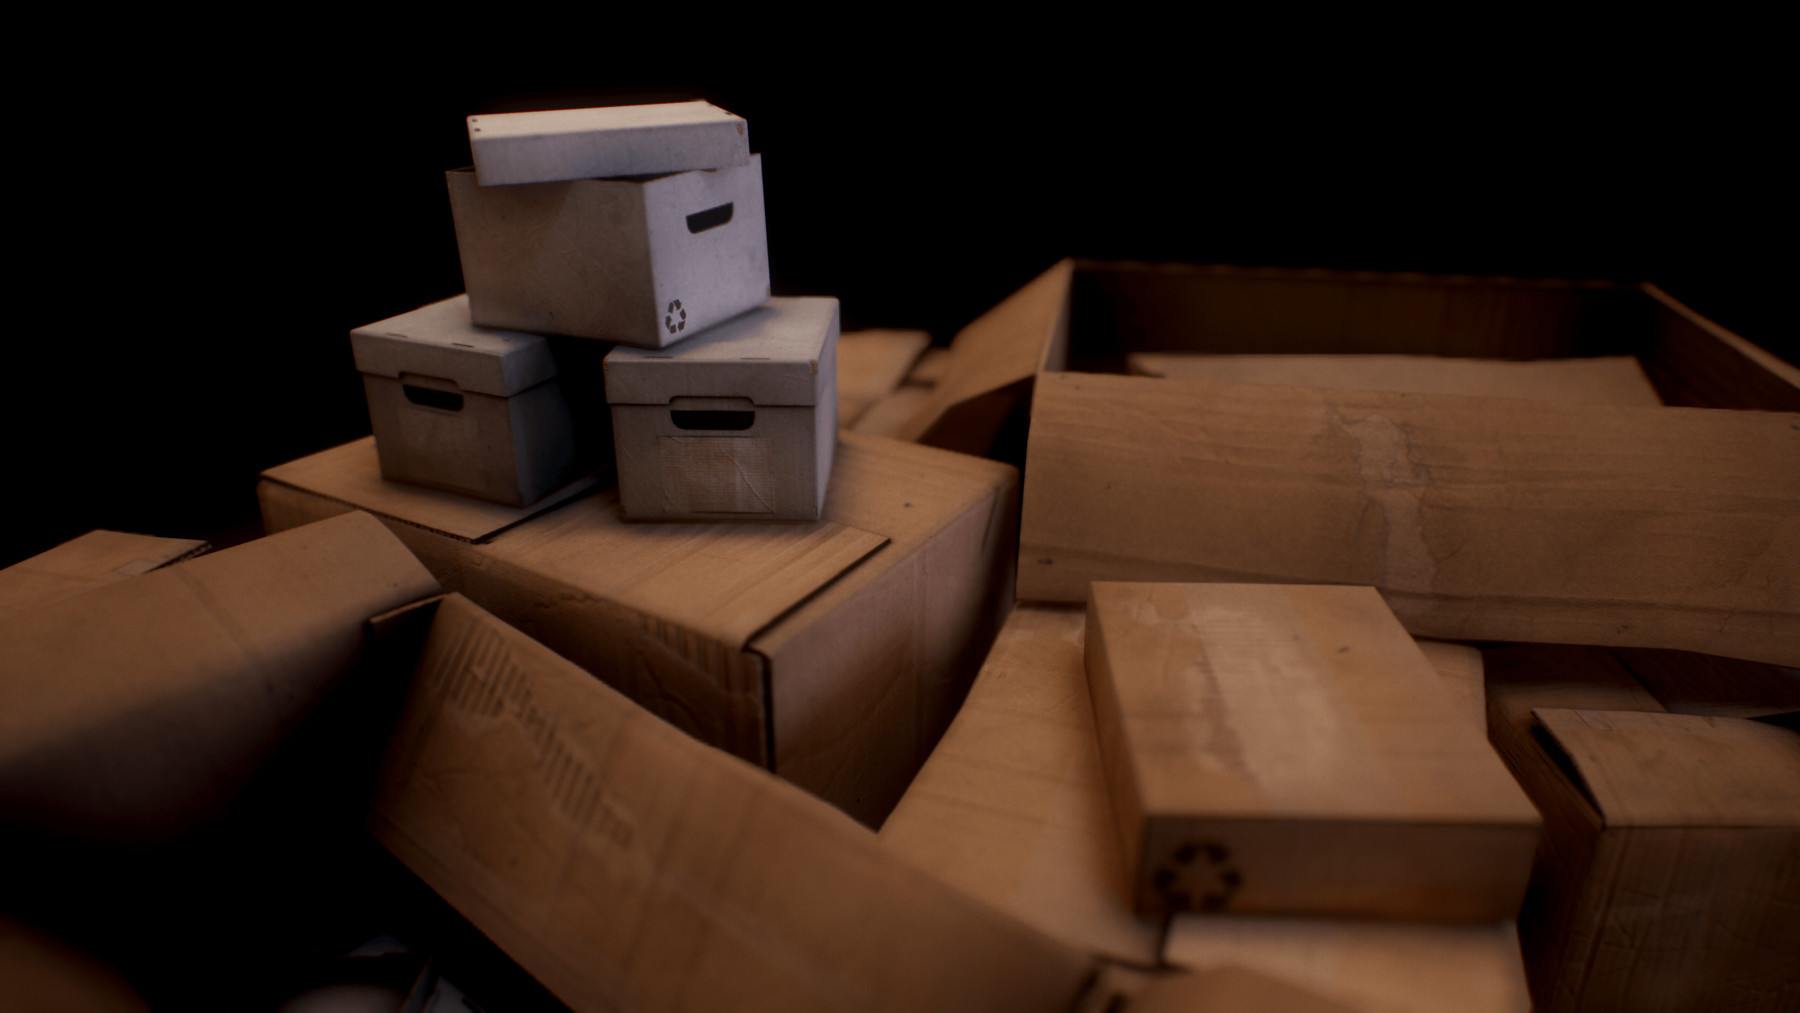 PBR Cardboard Boxes (Standalone, Unity, Unreal Engine)